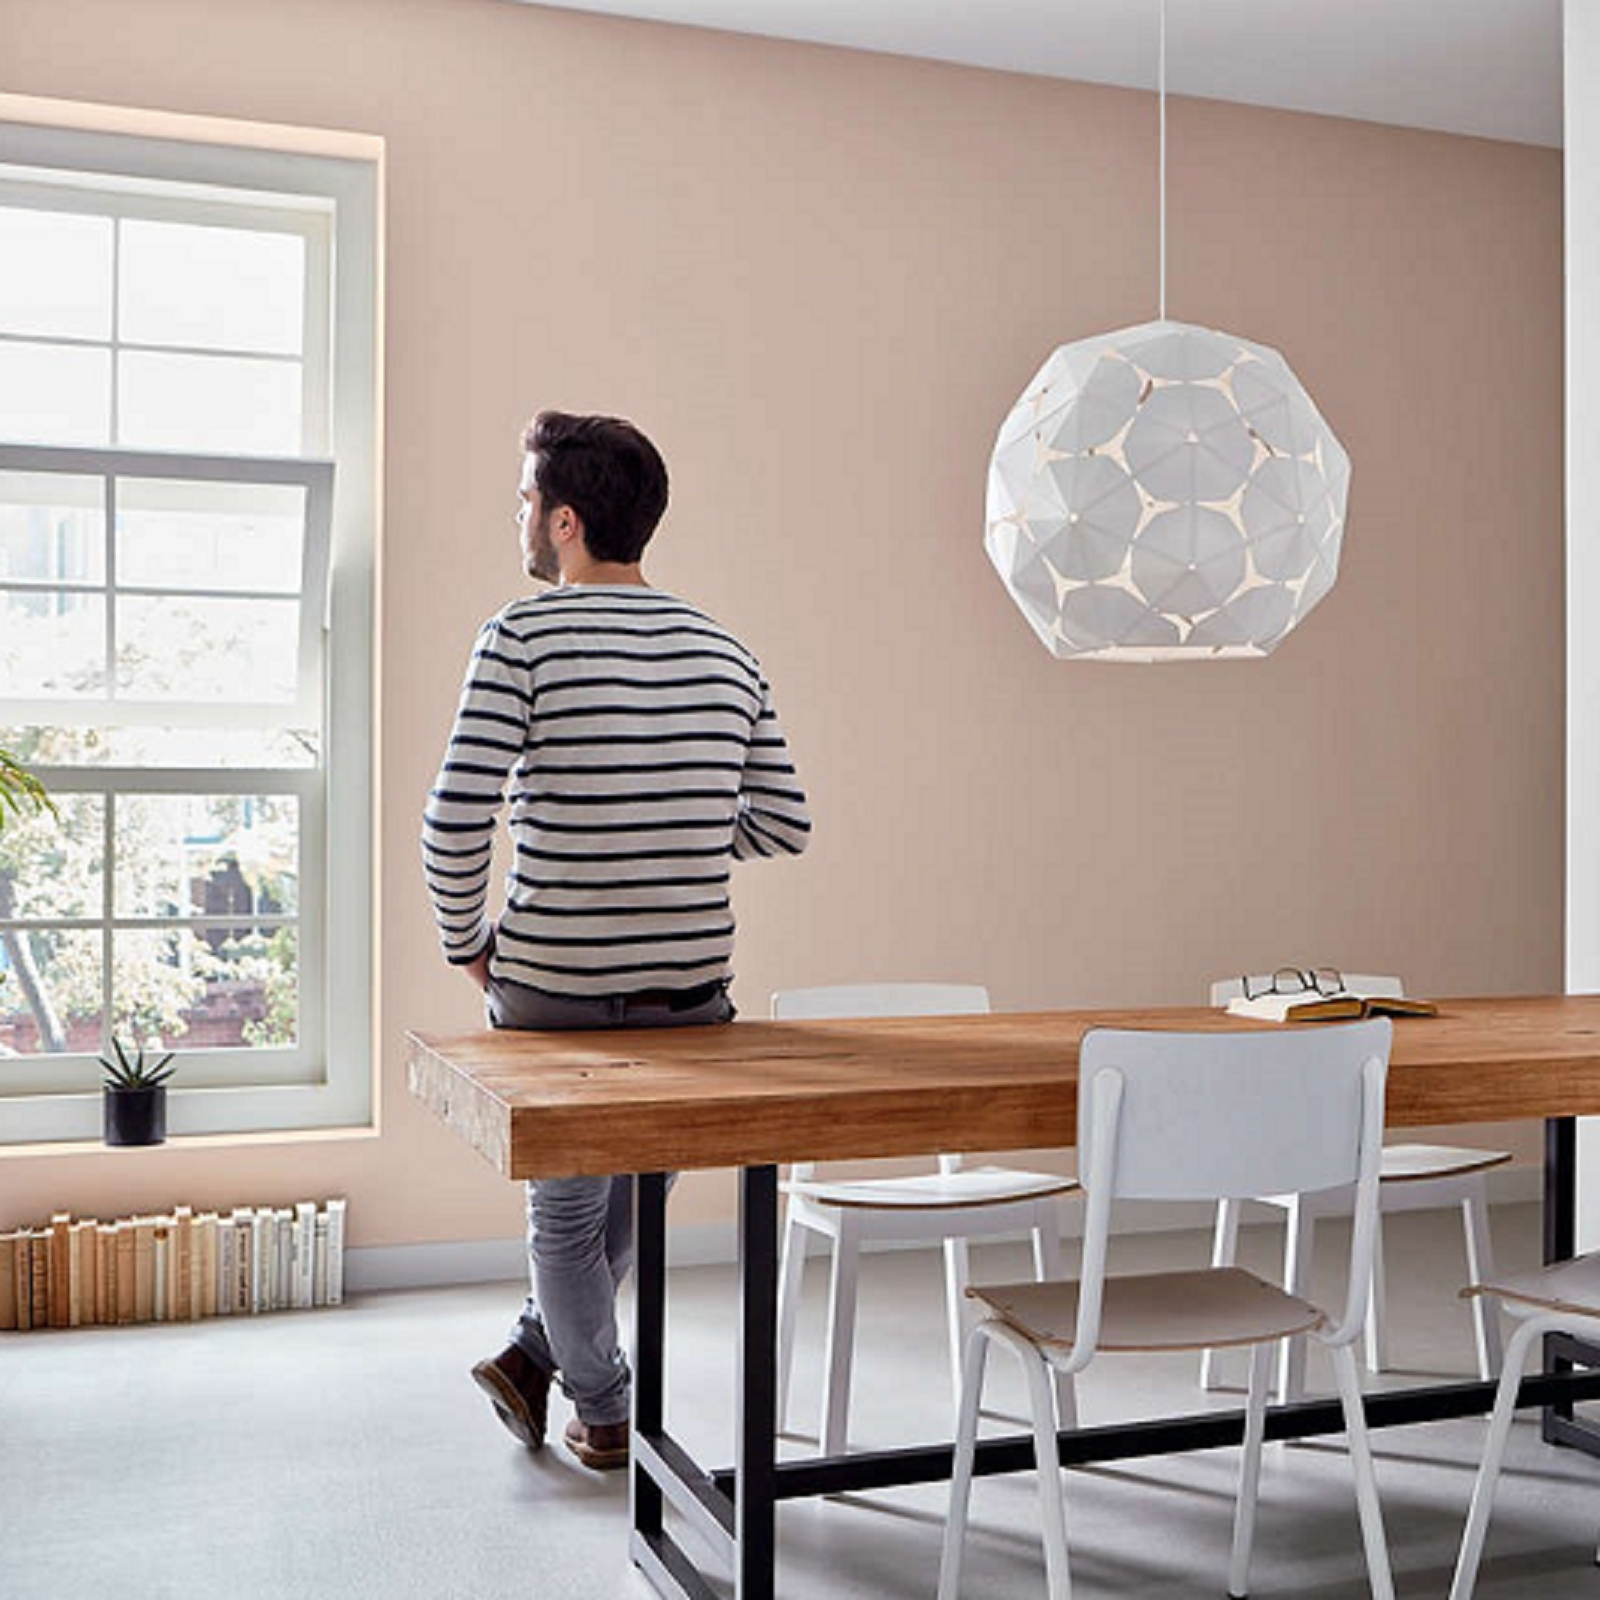 Lampadario - :: prova sito::: - Suspension light Philips myLiving ...